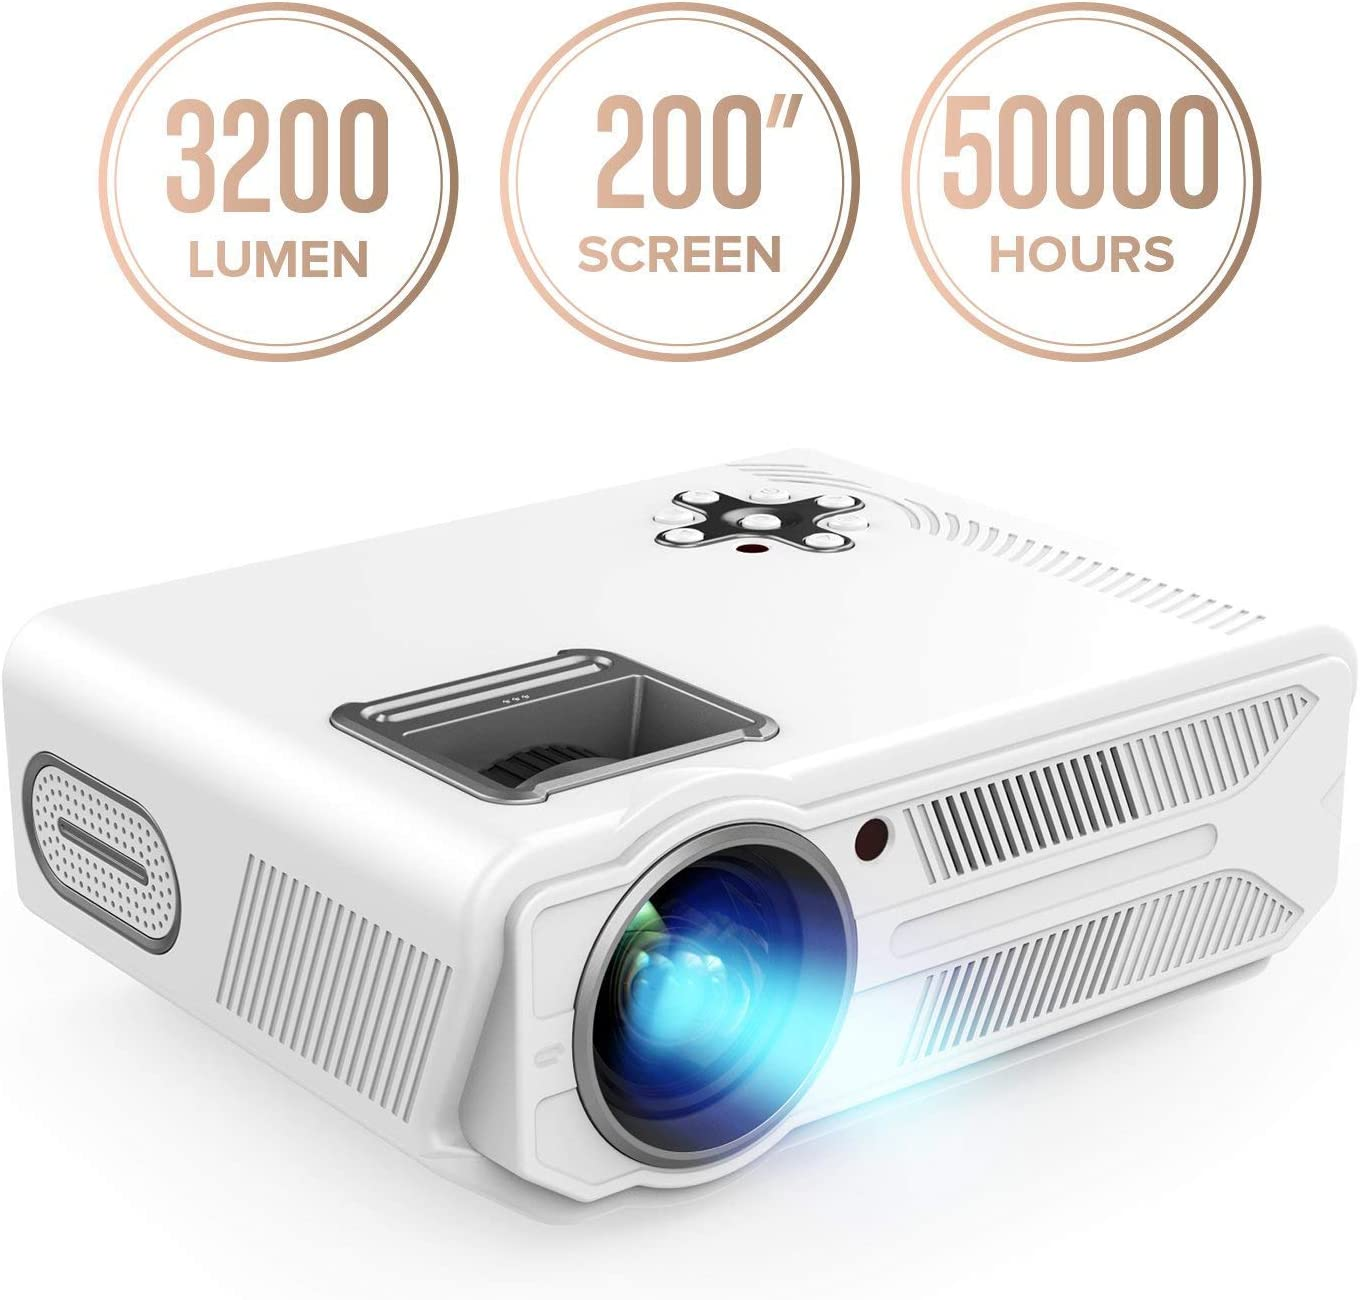 DBPOWER-RD-819-Projector